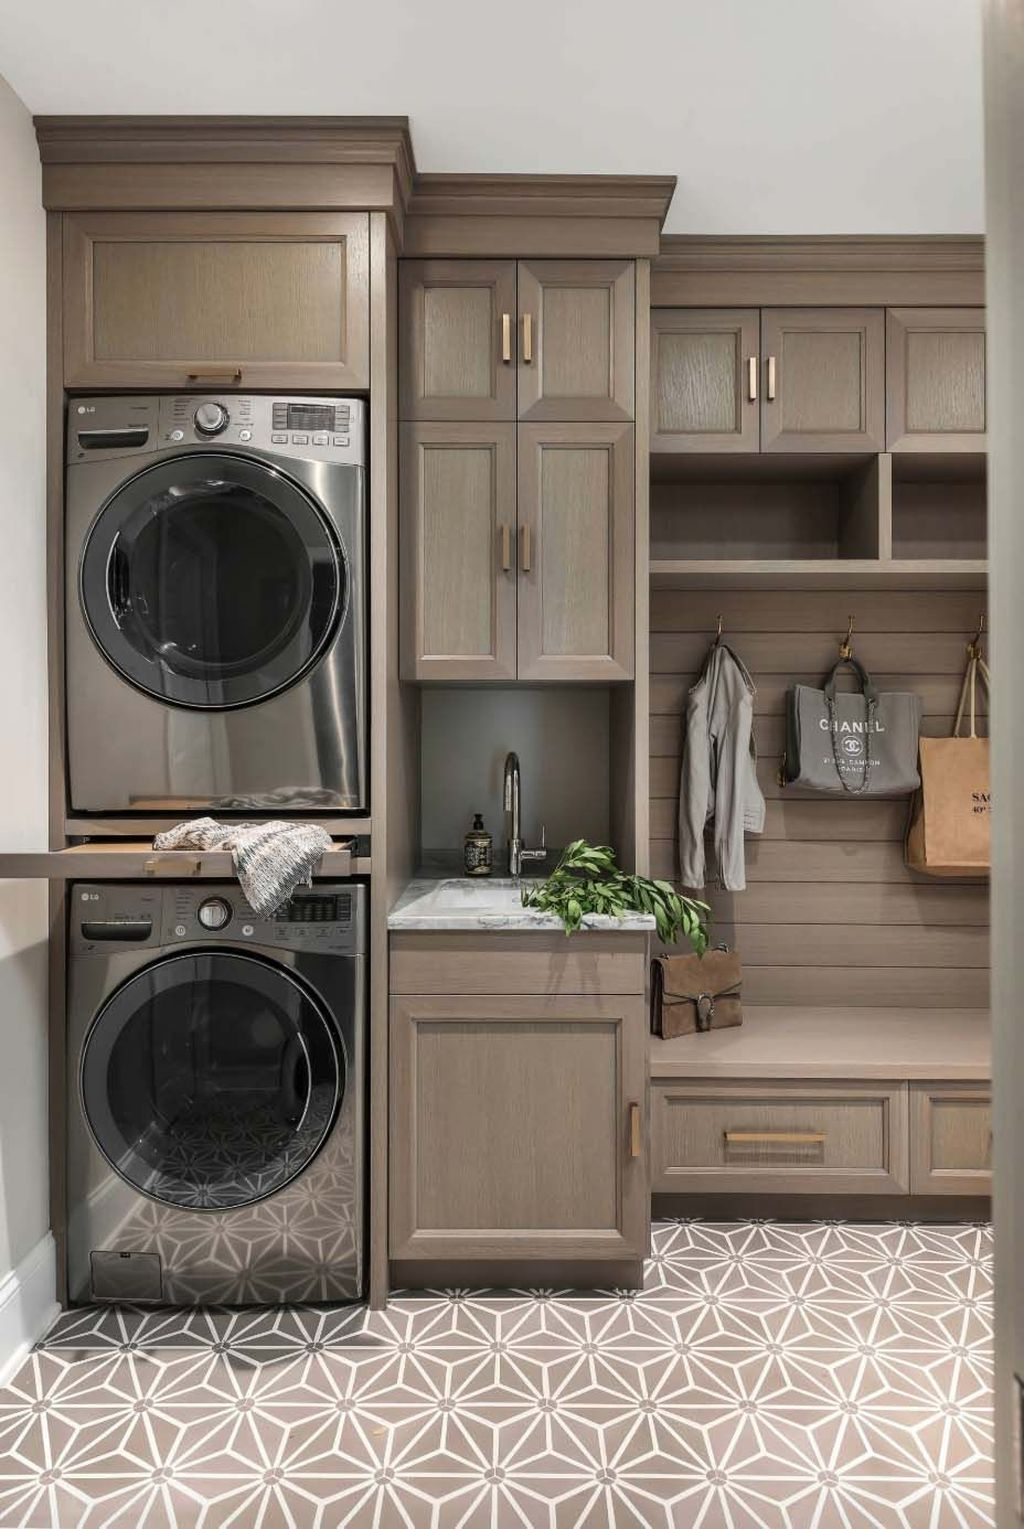 Favored Laundry Room Organization Ideas To Try 07